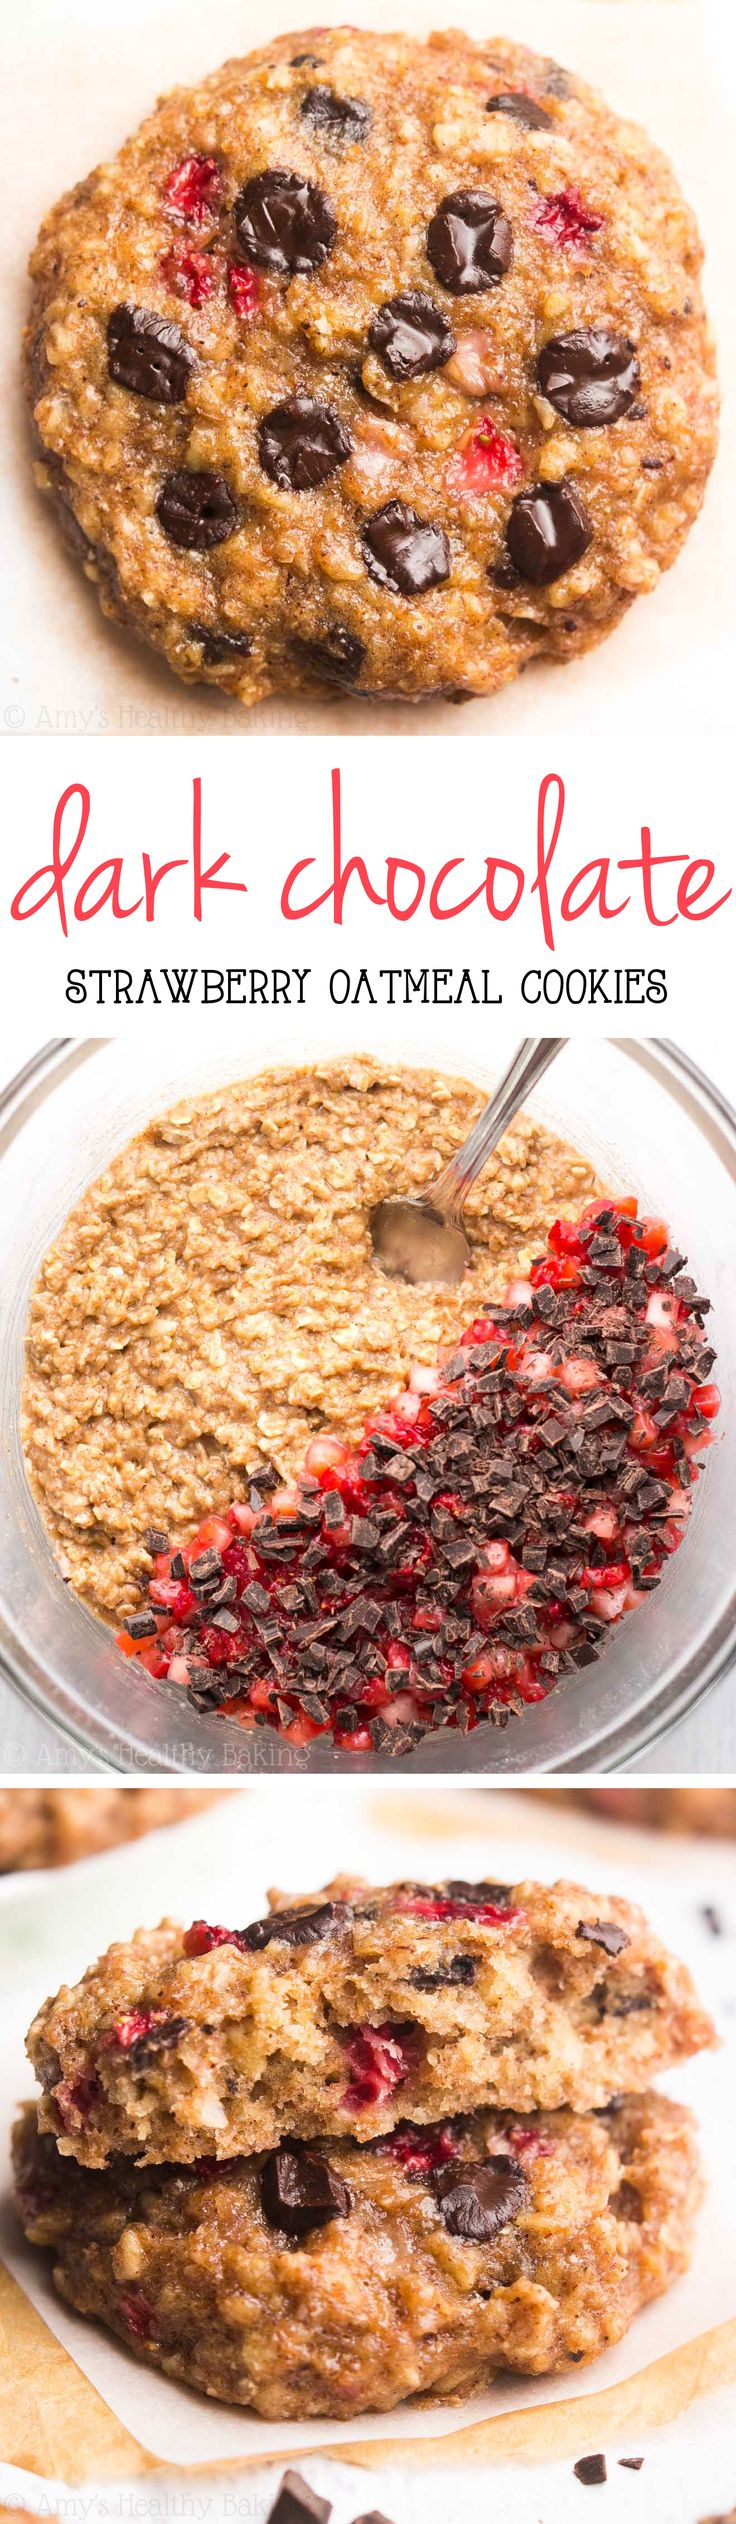 Clean-Eating Dark Chocolate Strawberry Oatmeal Cookies -- just 98 calories, but these skinny cookies don't taste healthy at all! You'll never need another oatmeal cookie recipe again!